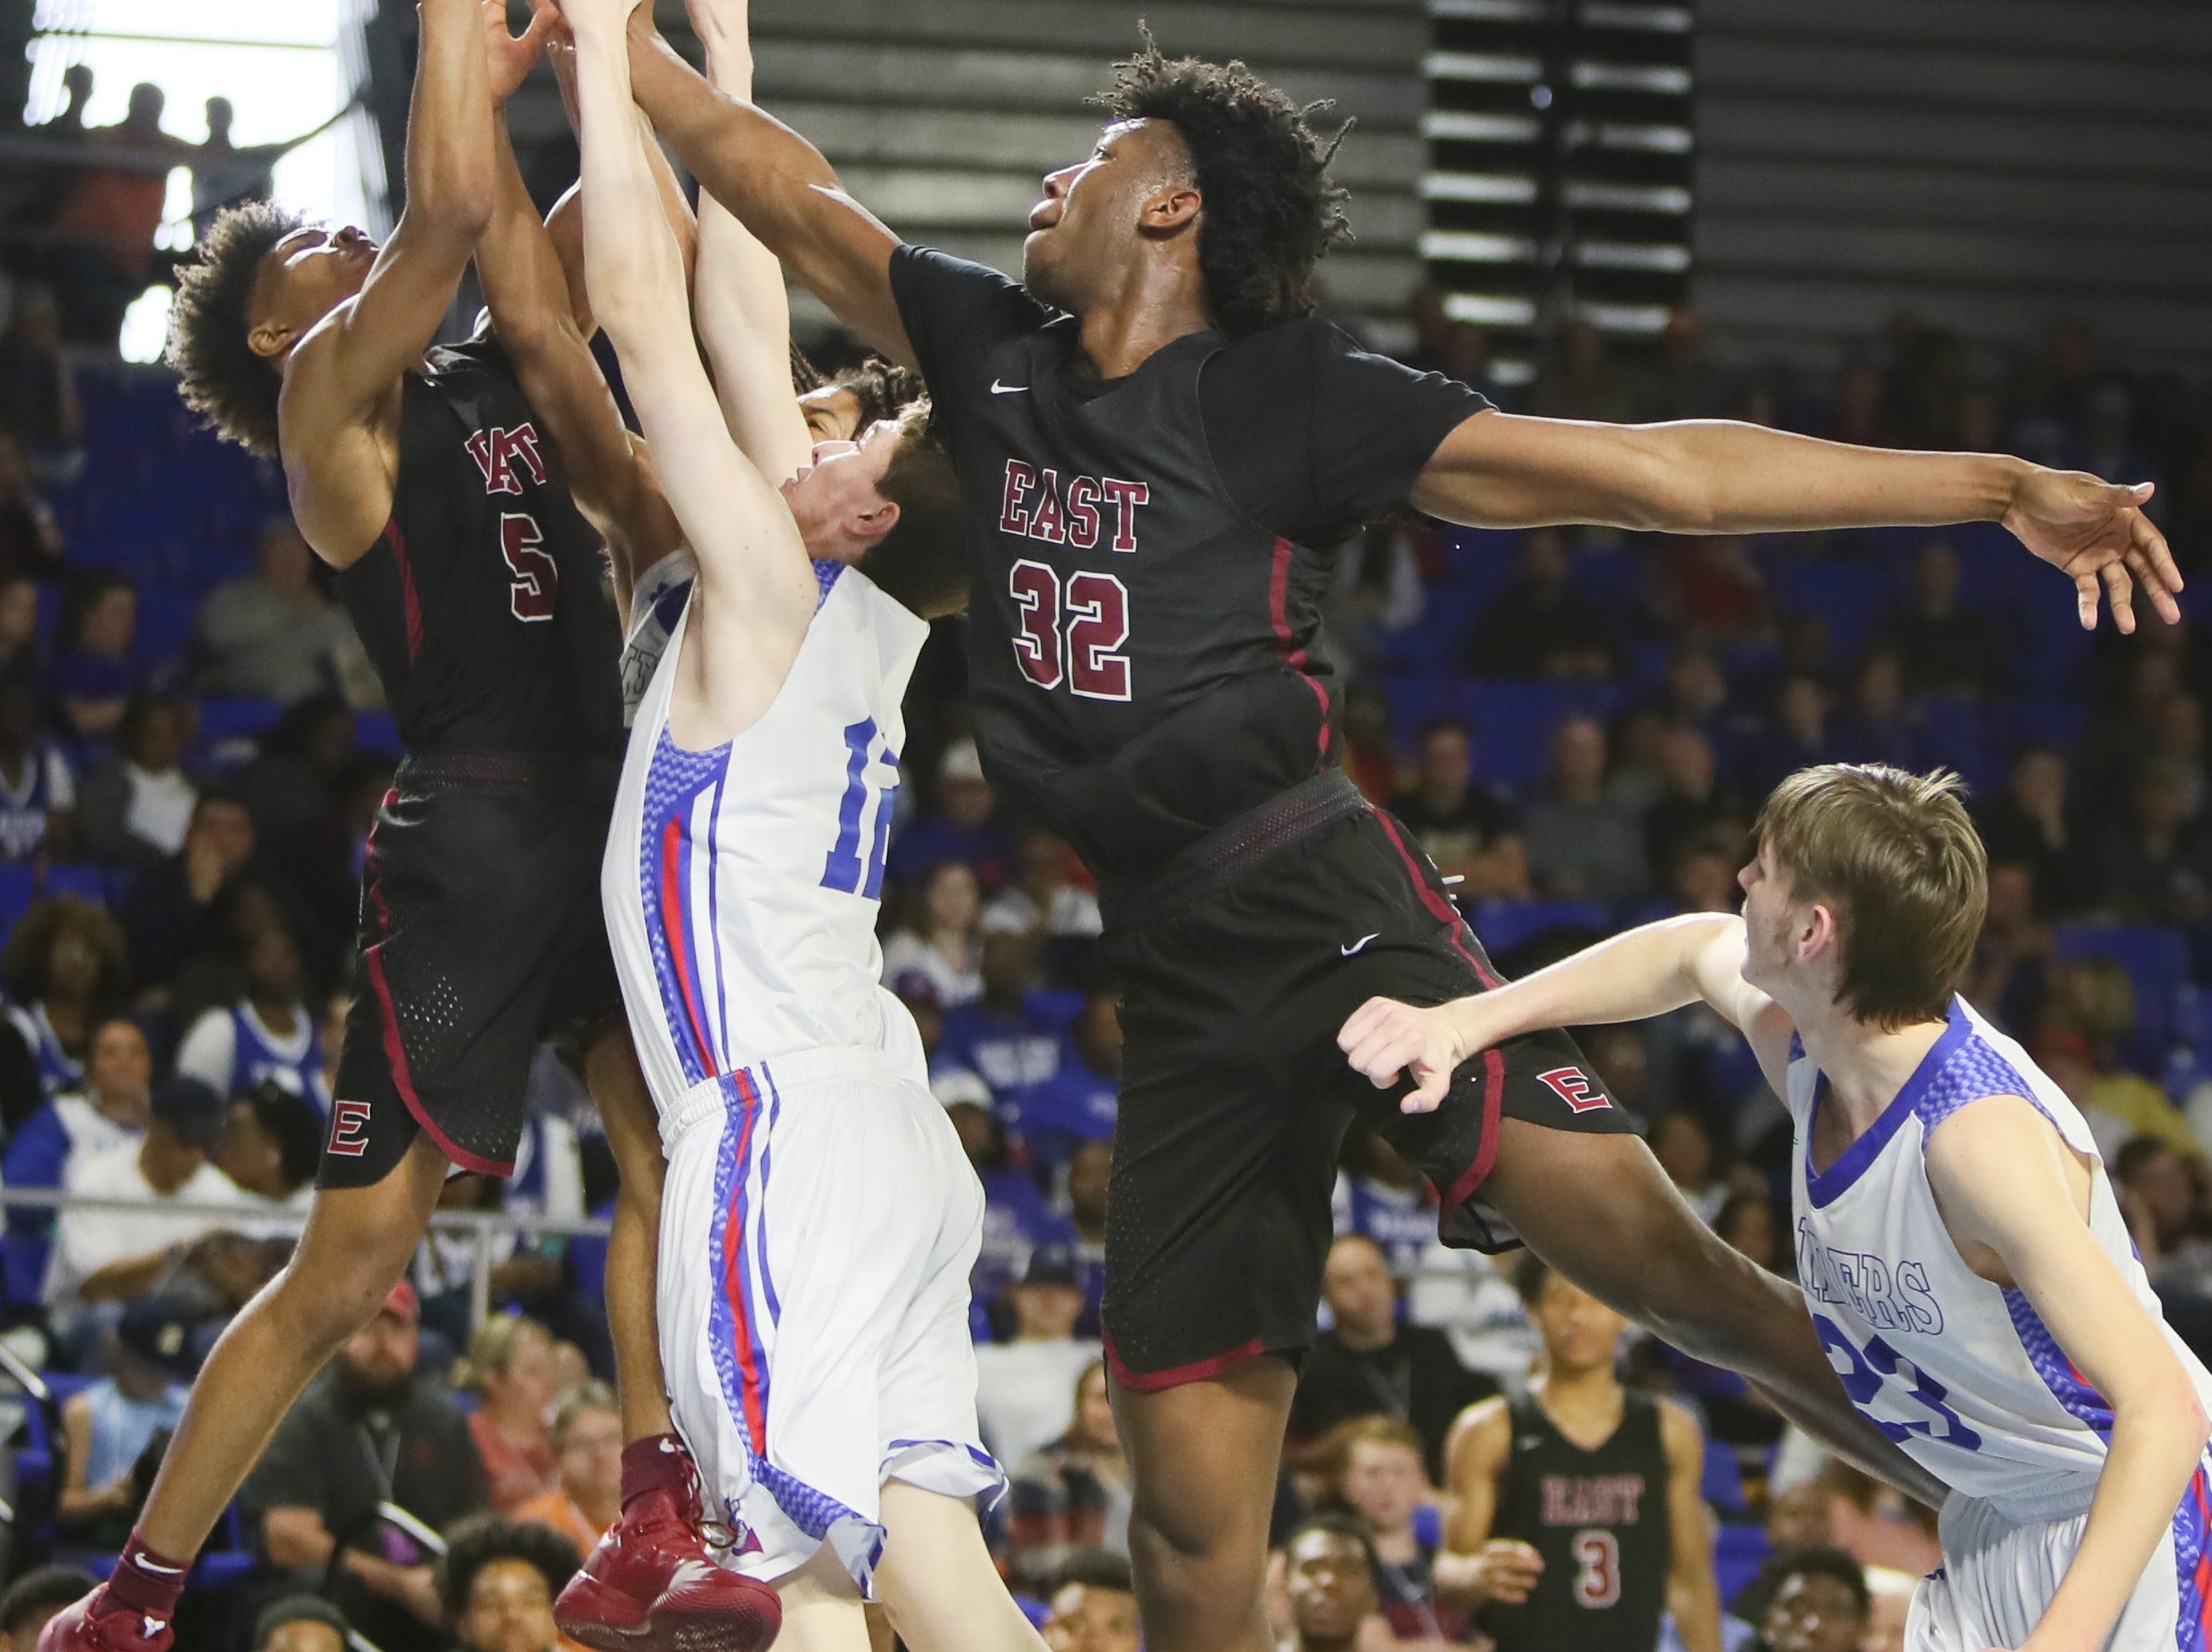 Memphis East's Tadarius Jacobs, left, and James Wiseman battle Cleveland's Logan Colbaugh for a rebound during the TSSAA Division I basketball state tournament at the Murphy Center in Murfreesboro, Tenn. on Thursday, March 14, 2019.